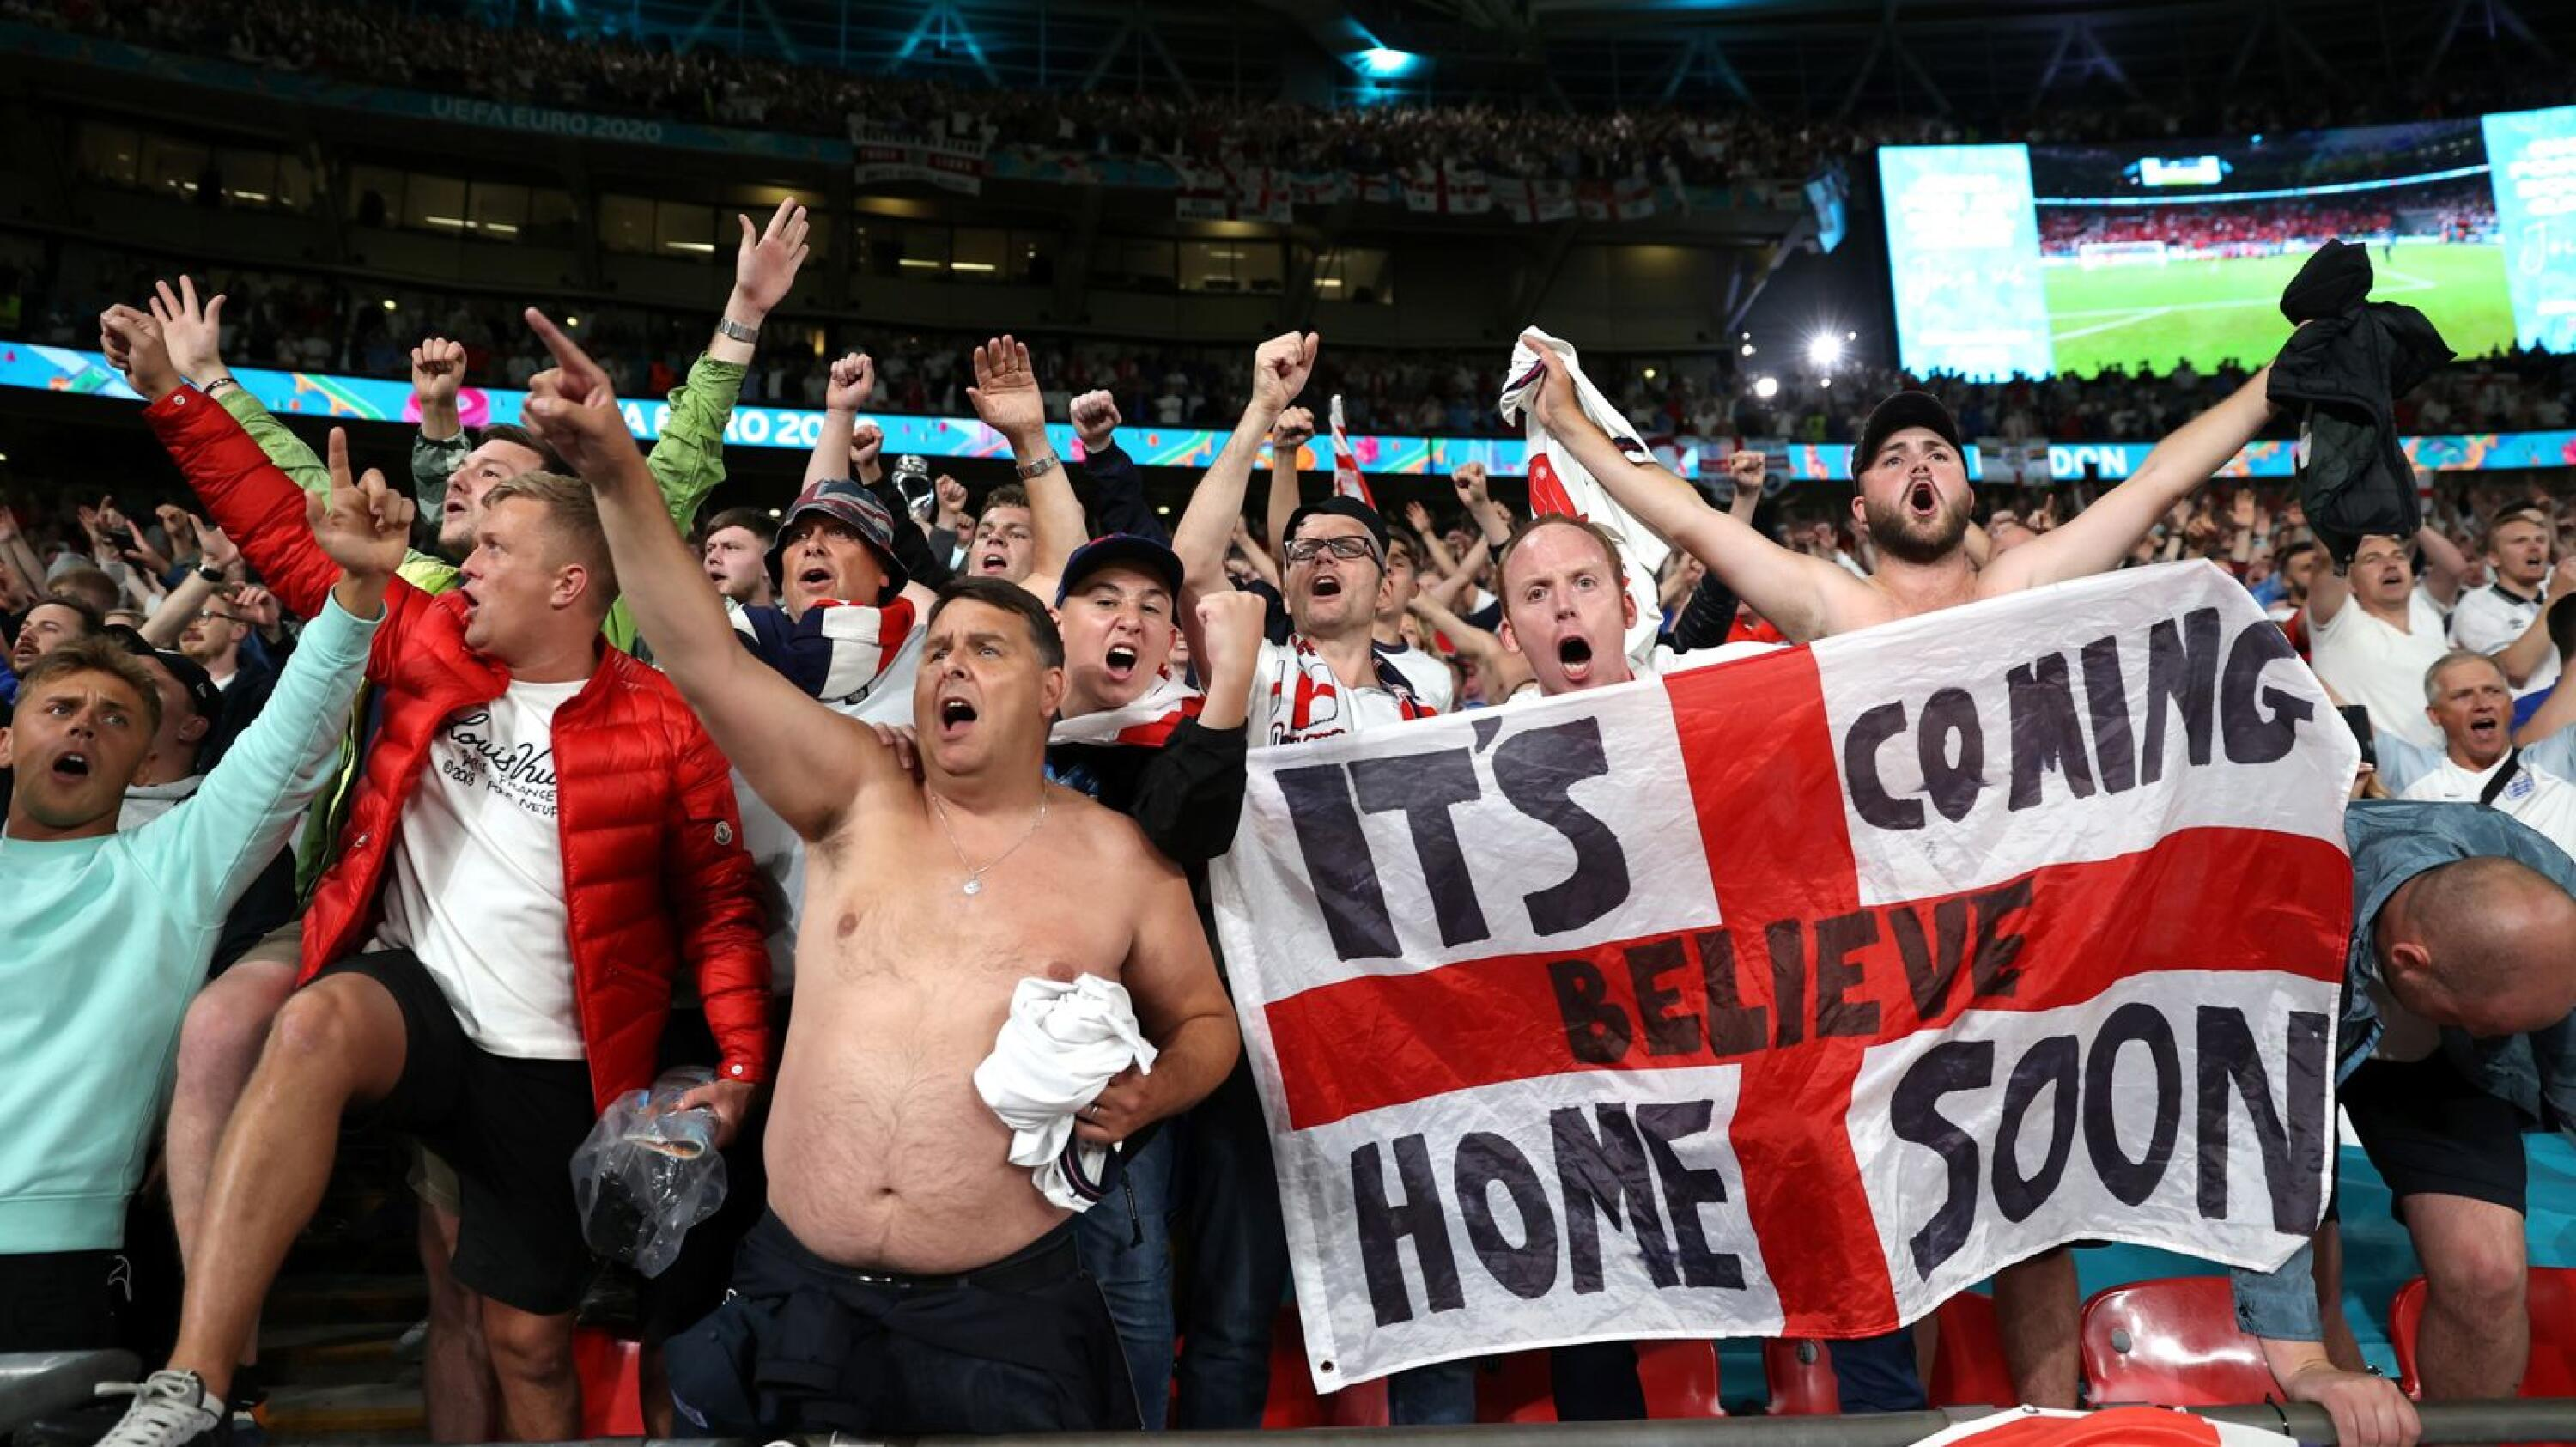 England fans celebrate after the Euro 2020 match against Denmark